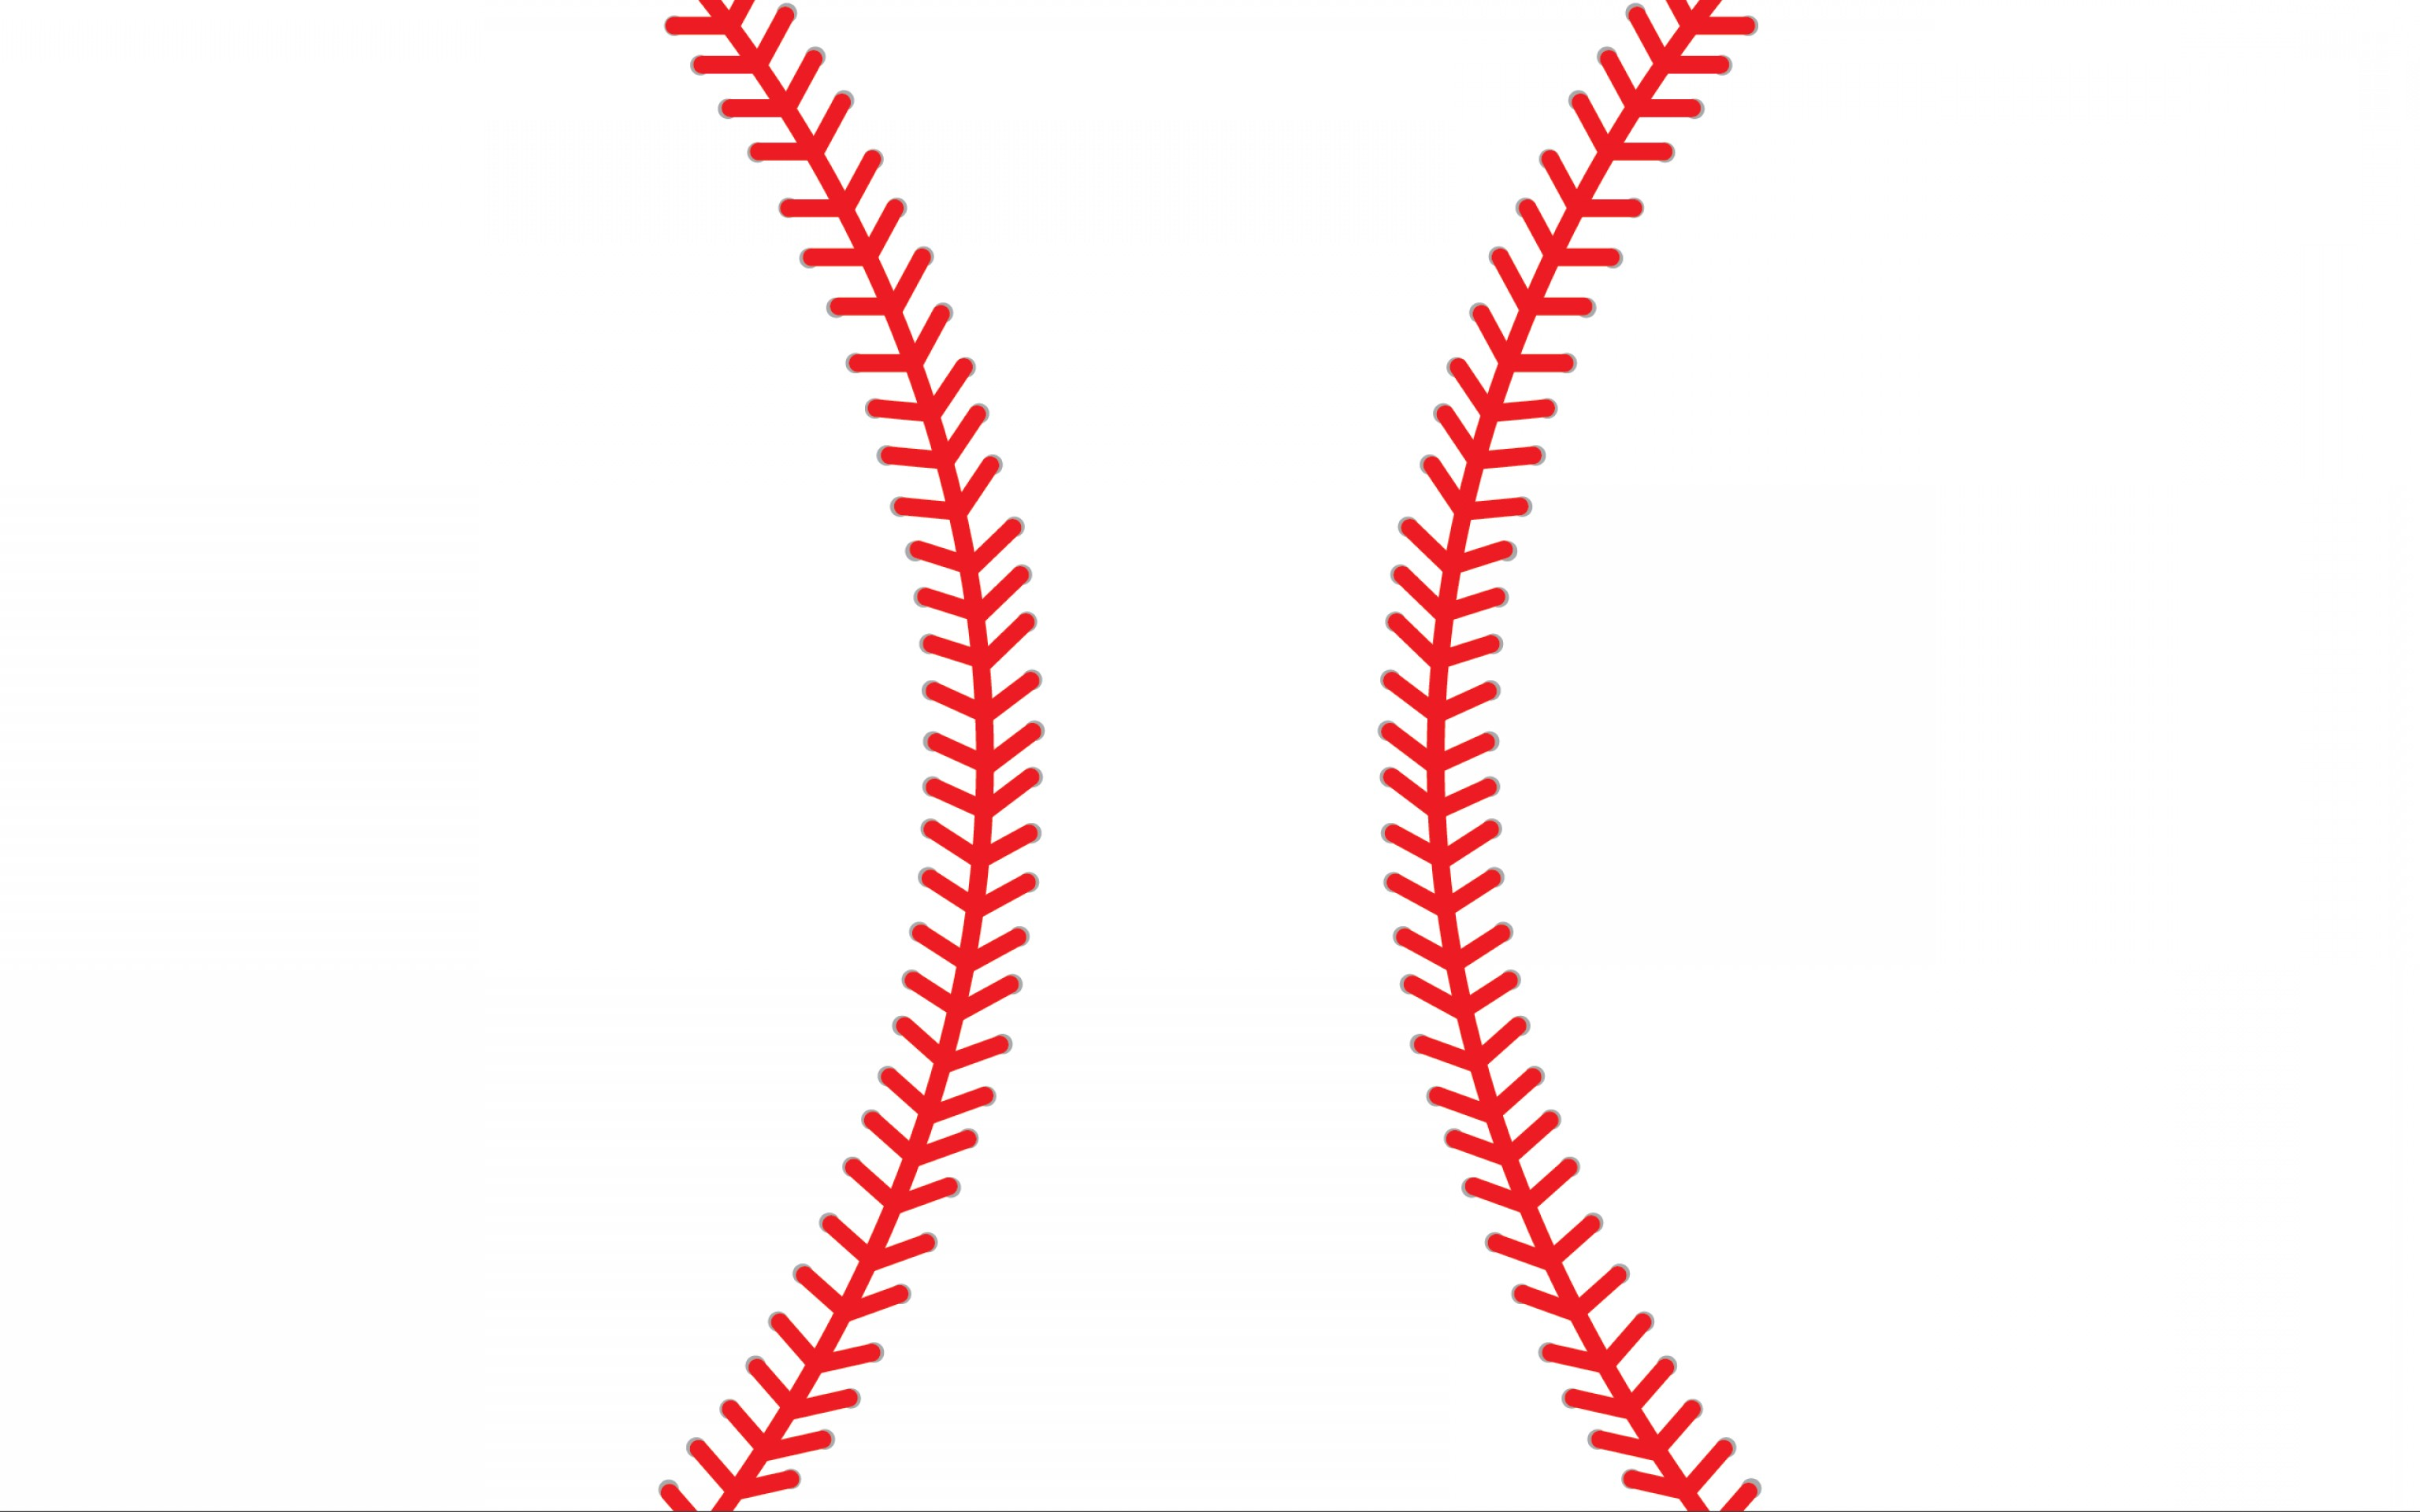 Softball Laces Vector Art B W: Best Baseball Stitches Png Vector Library